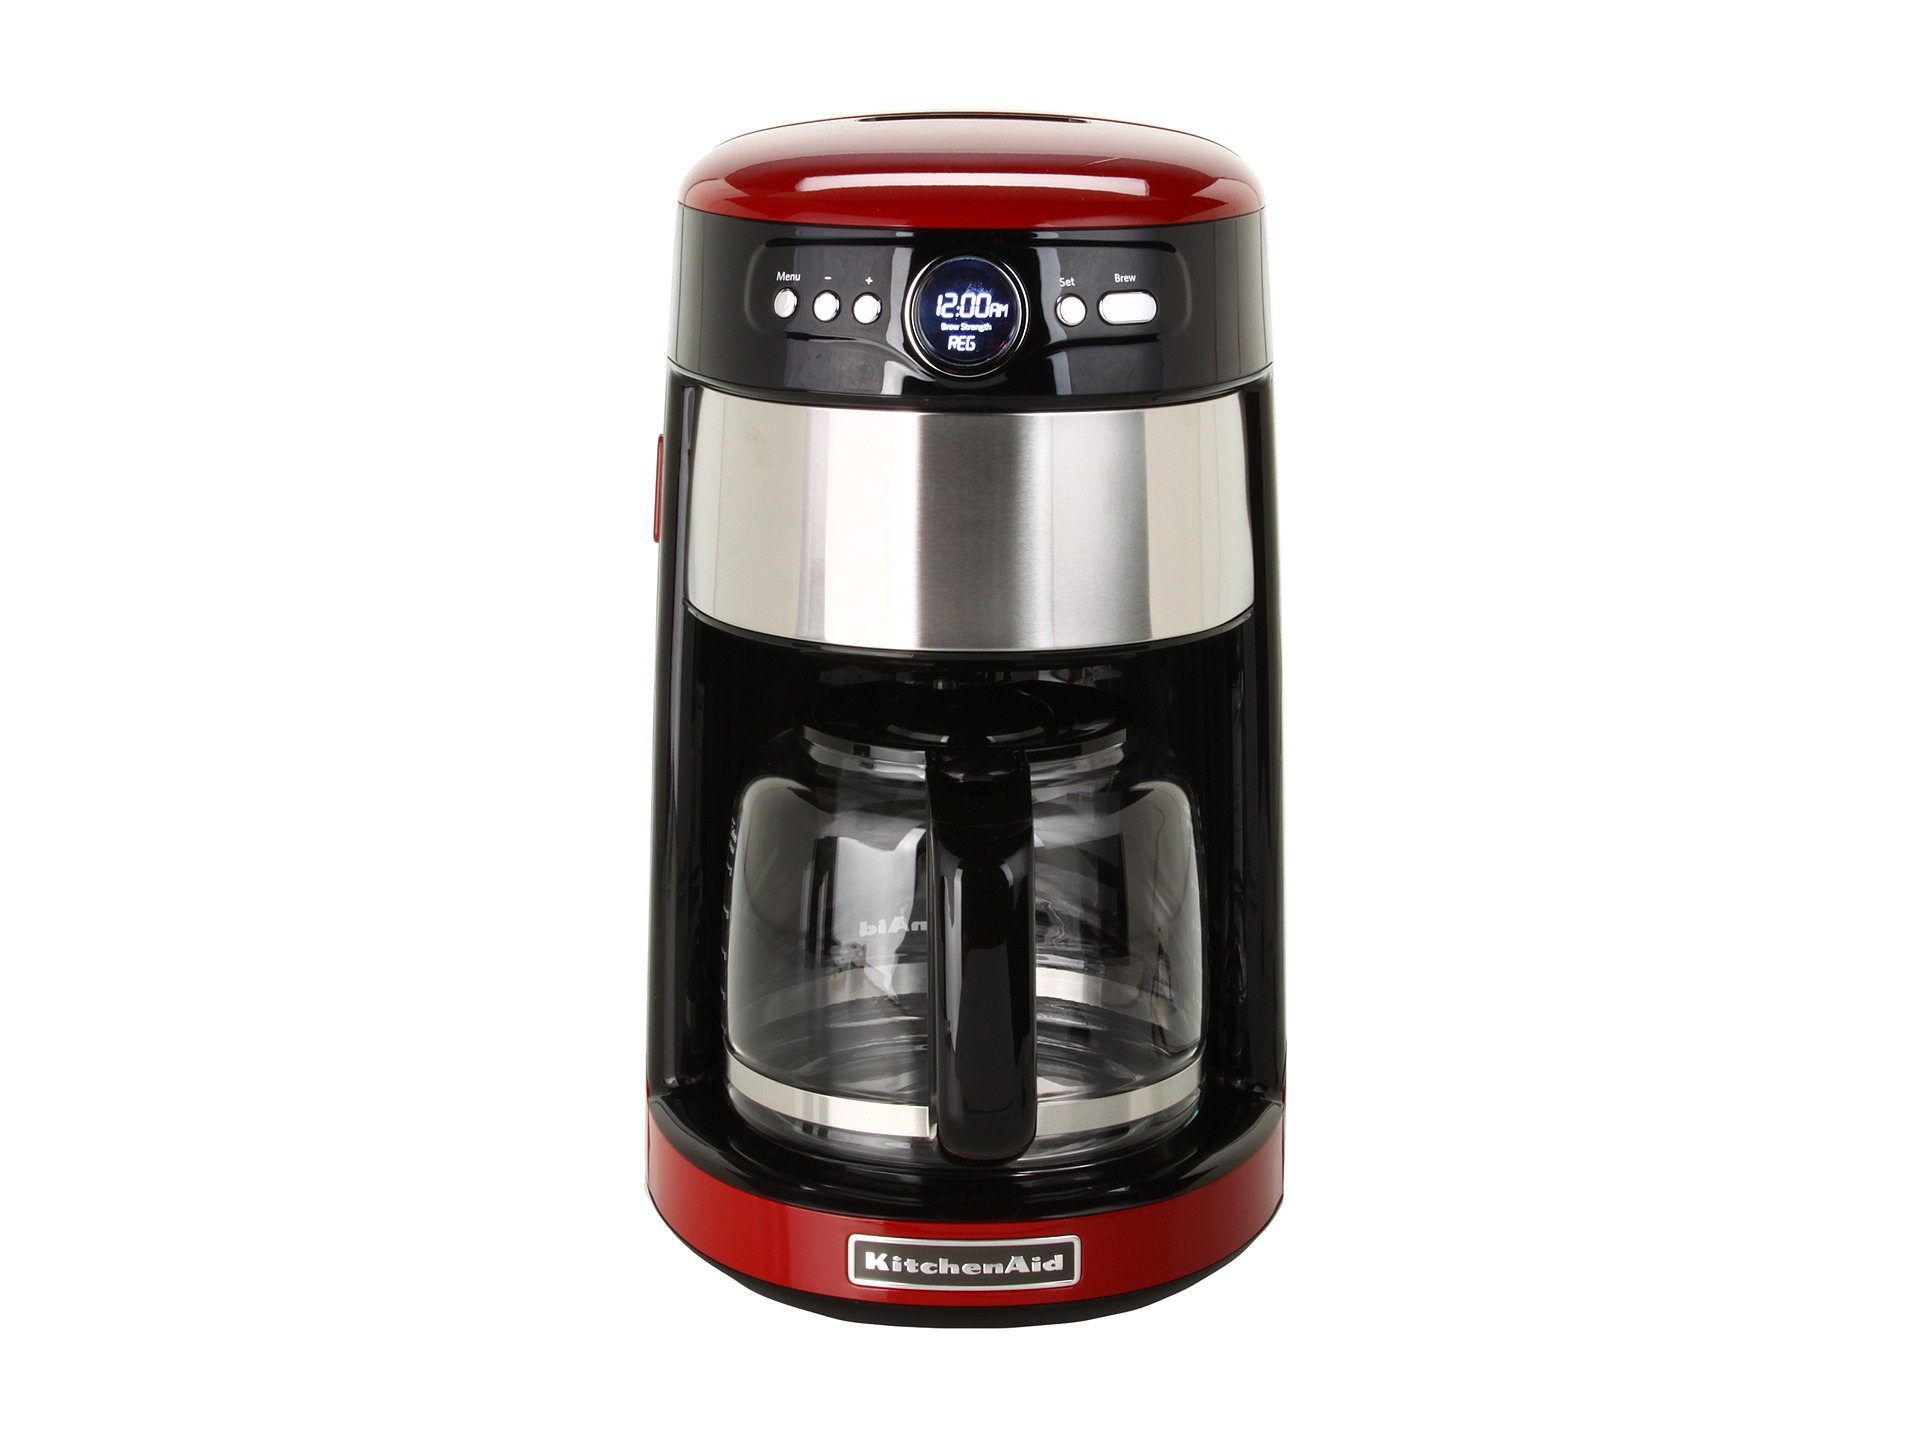 Kitchenaid Coffee Maker Operating Manual : Kitchenaid Coffee Maker Manual Kcm5340b0 - Kitchen Design